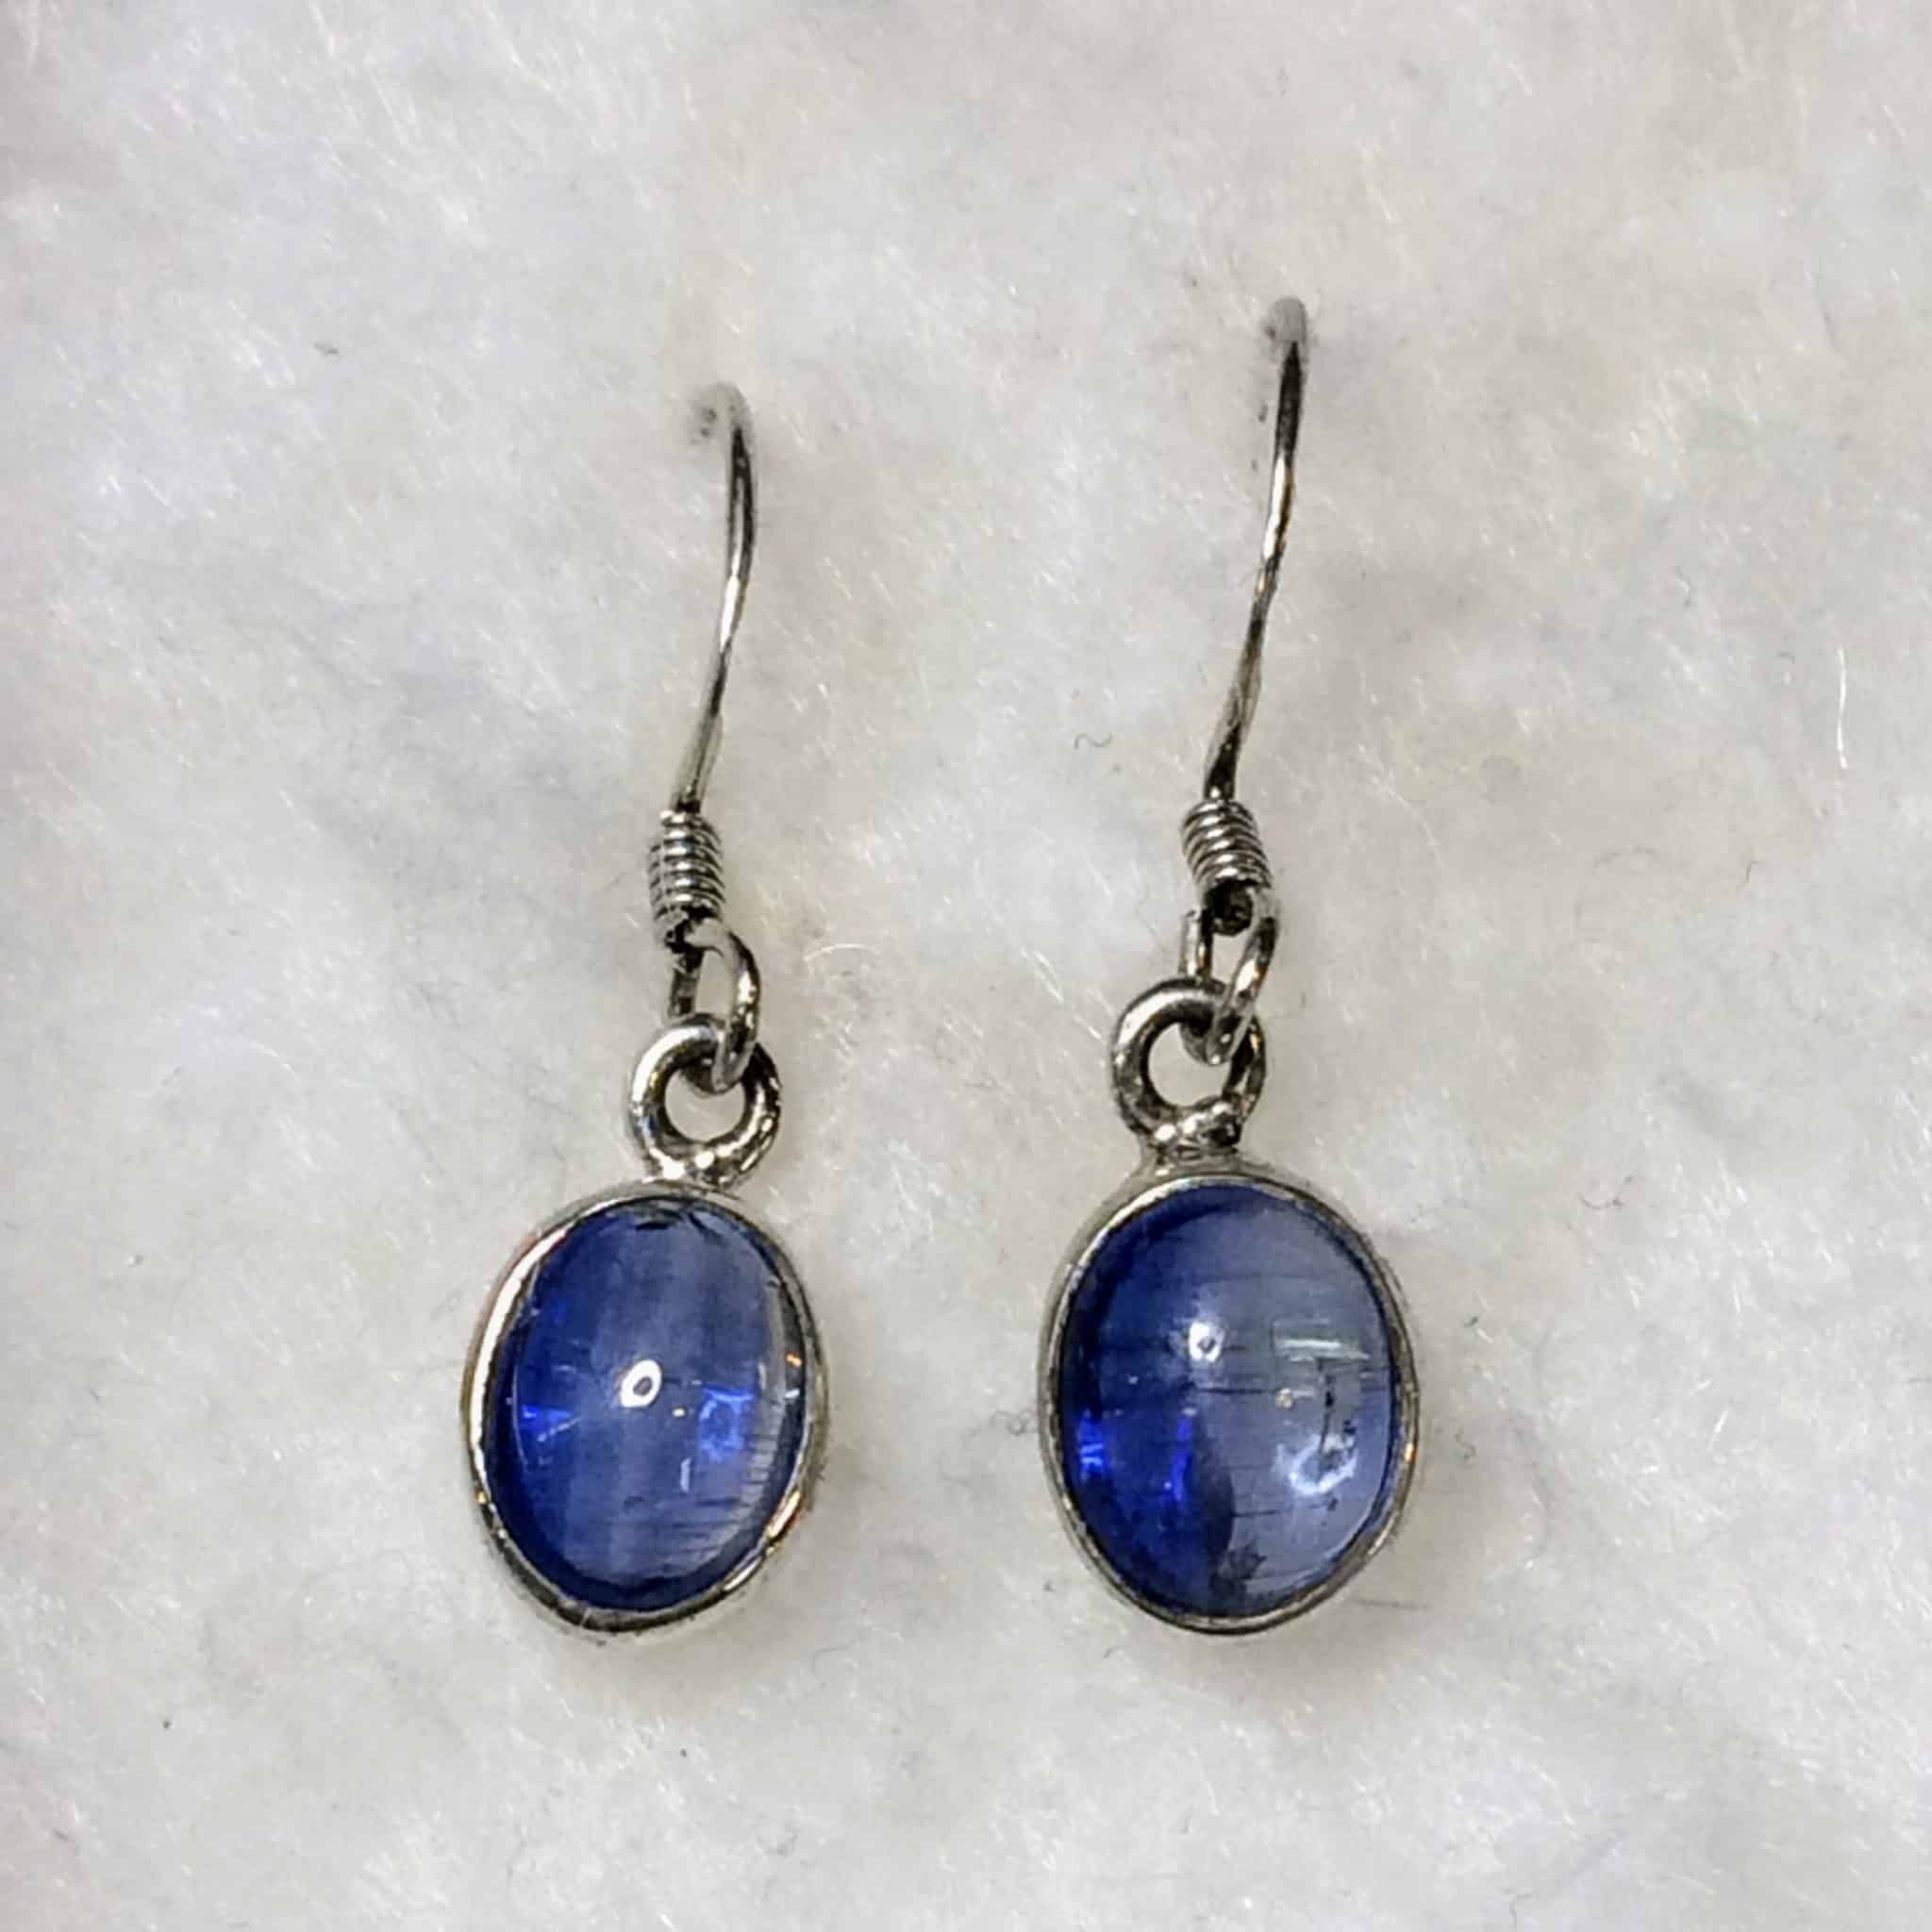 these in or may sapphire jewelry purposes industrial polished decorative different worn laboratories created are annies into colors also and be sapphires as home cut of blue for gems gemstones